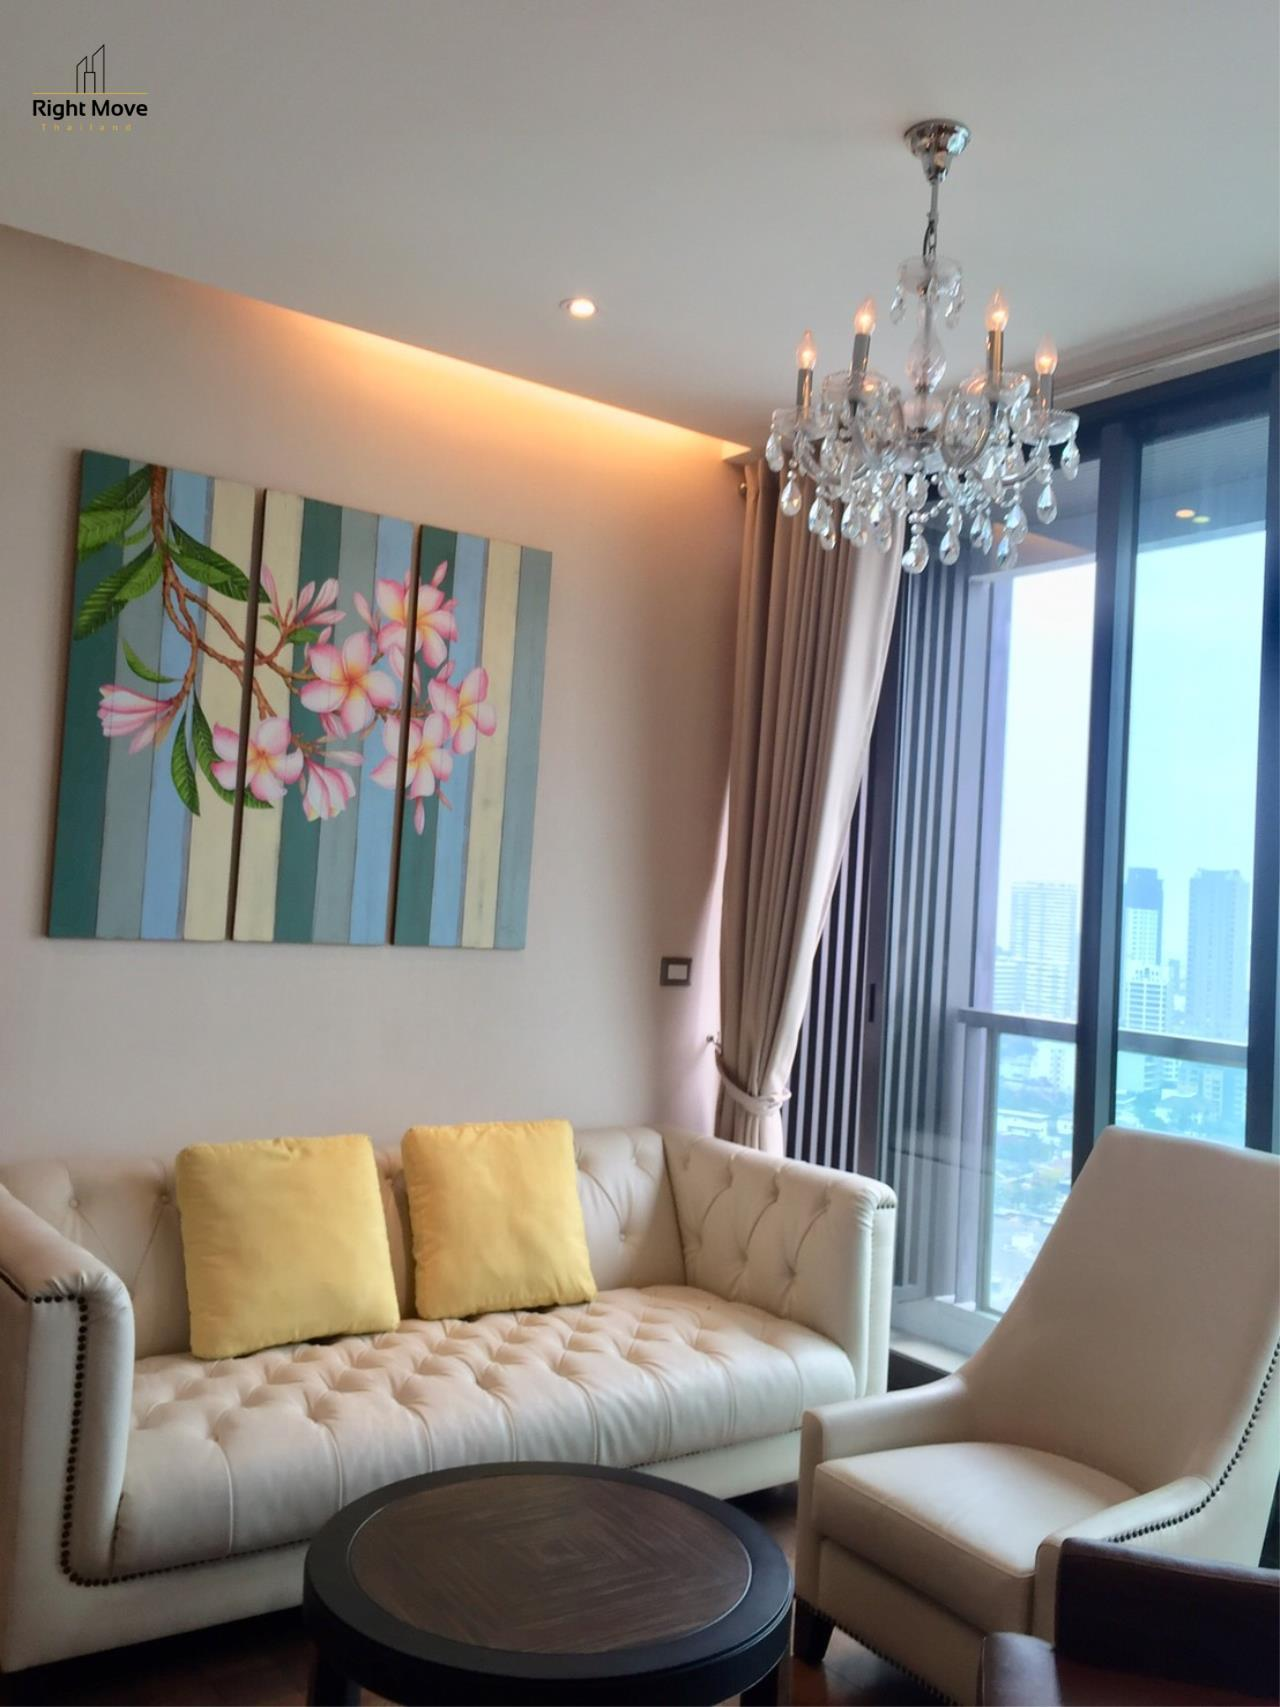 Right Move Thailand Agency's CA6532 The Address 28 For Rent 55,000 THB - 2 Bedrooms - 67 Sqm 1